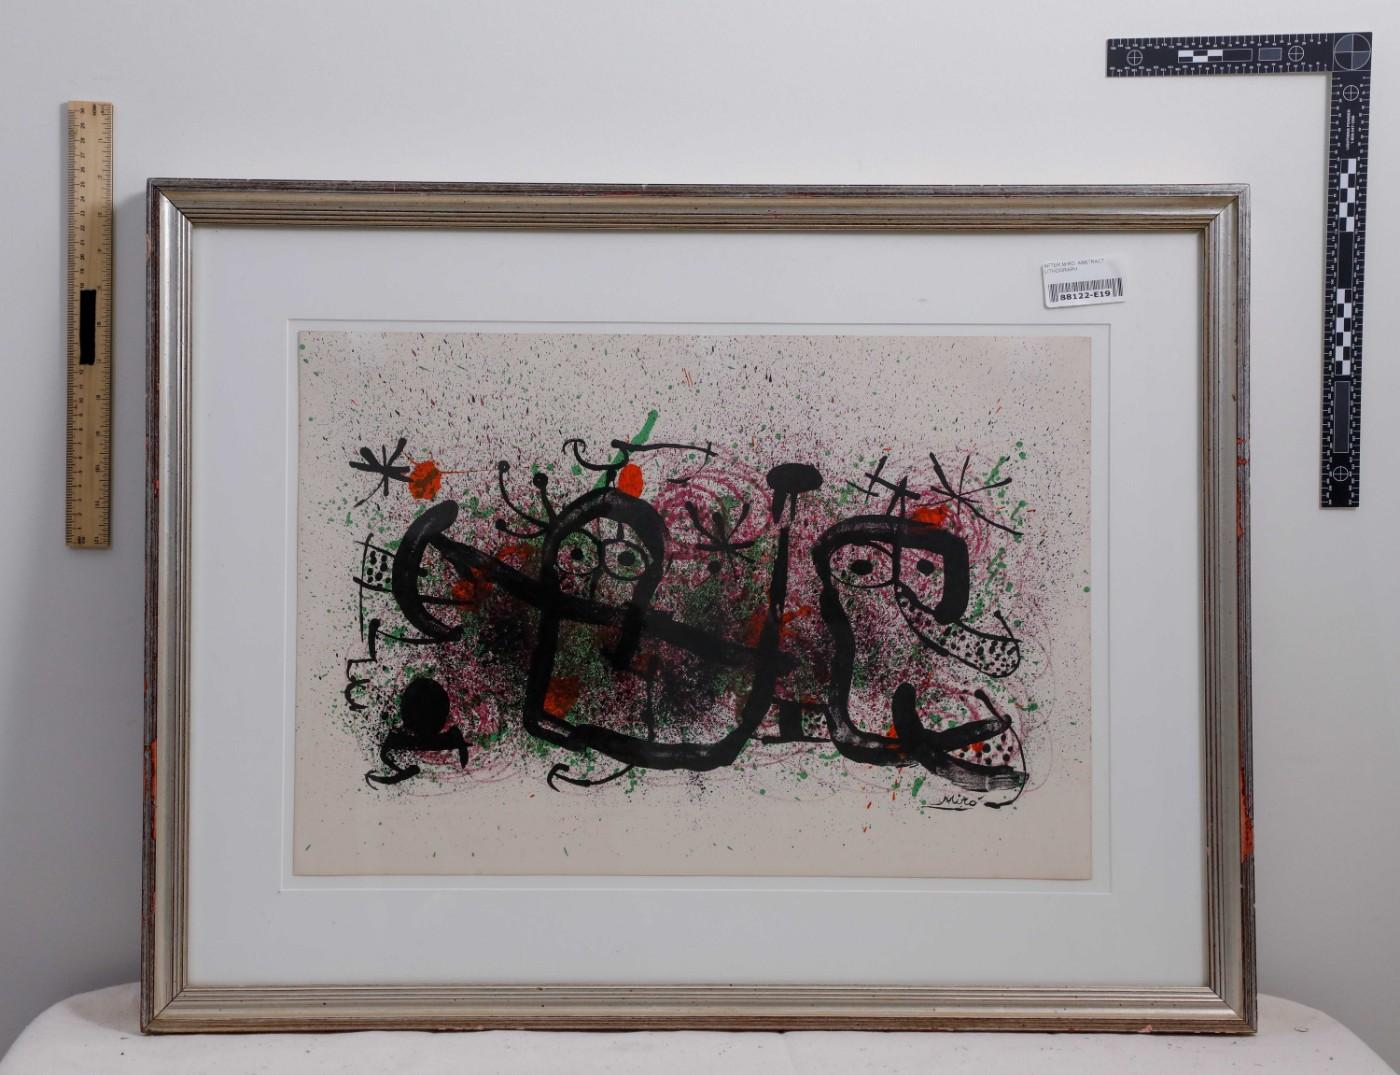 A Juan Miró work recovered by police